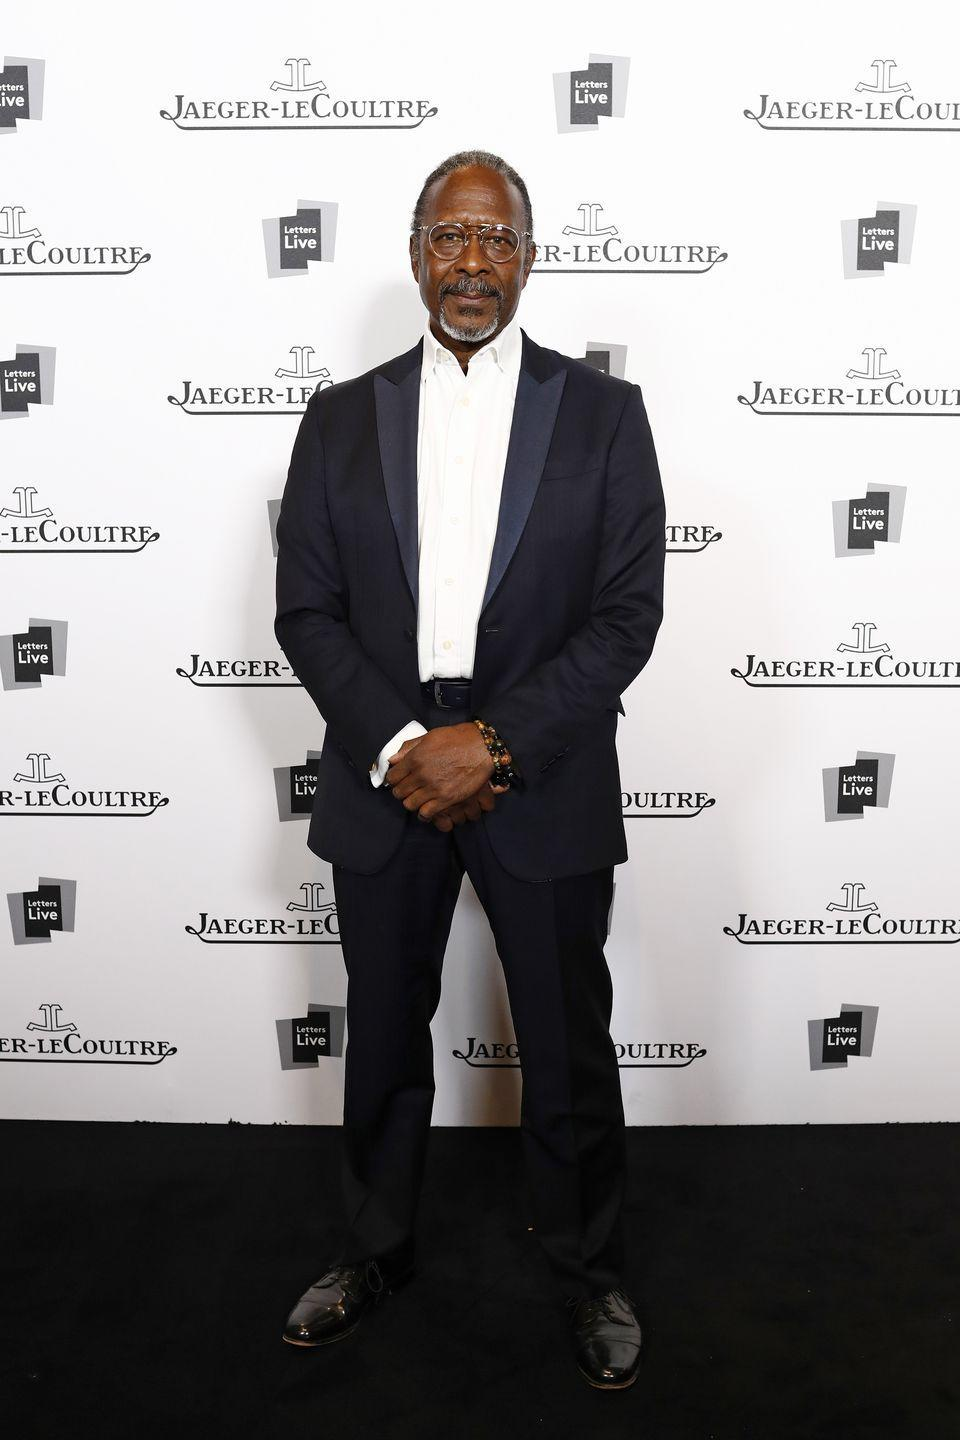 """<p>Since then, Peters appeared in David Simon's New Orleans-based drama <em>Treme</em>. He's also had recurring and starring roles on <em>Damages</em>, <em>Jessica Jones</em>, <em>Person of Interest</em>, <em>Bulletproof,</em> <em>Love Is</em>, and landed a role in the Oscar-winning <em>Three Billboards Outside Ebbing, Missouri</em>.</p><p>Despite his seemingly bottomless well of work, it's still Lester Freamon that he wishes he could reprise someday: """"We tried to put out a rumor there would be a movie version, but that didn't fly. We talked up some spin-off possibilities—I really fancied <em>The Freamon Files</em>. Some of us are still pretty devastated it's all over,"""" he told <a href=""""https://www.scotsman.com/lifestyle-2-15039/interview-clarke-peters-down-to-the-wire-1-766609"""" rel=""""nofollow noopener"""" target=""""_blank"""" data-ylk=""""slk:The Scotsman"""" class=""""link rapid-noclick-resp""""><em>The Scotsman</em></a>.</p>"""